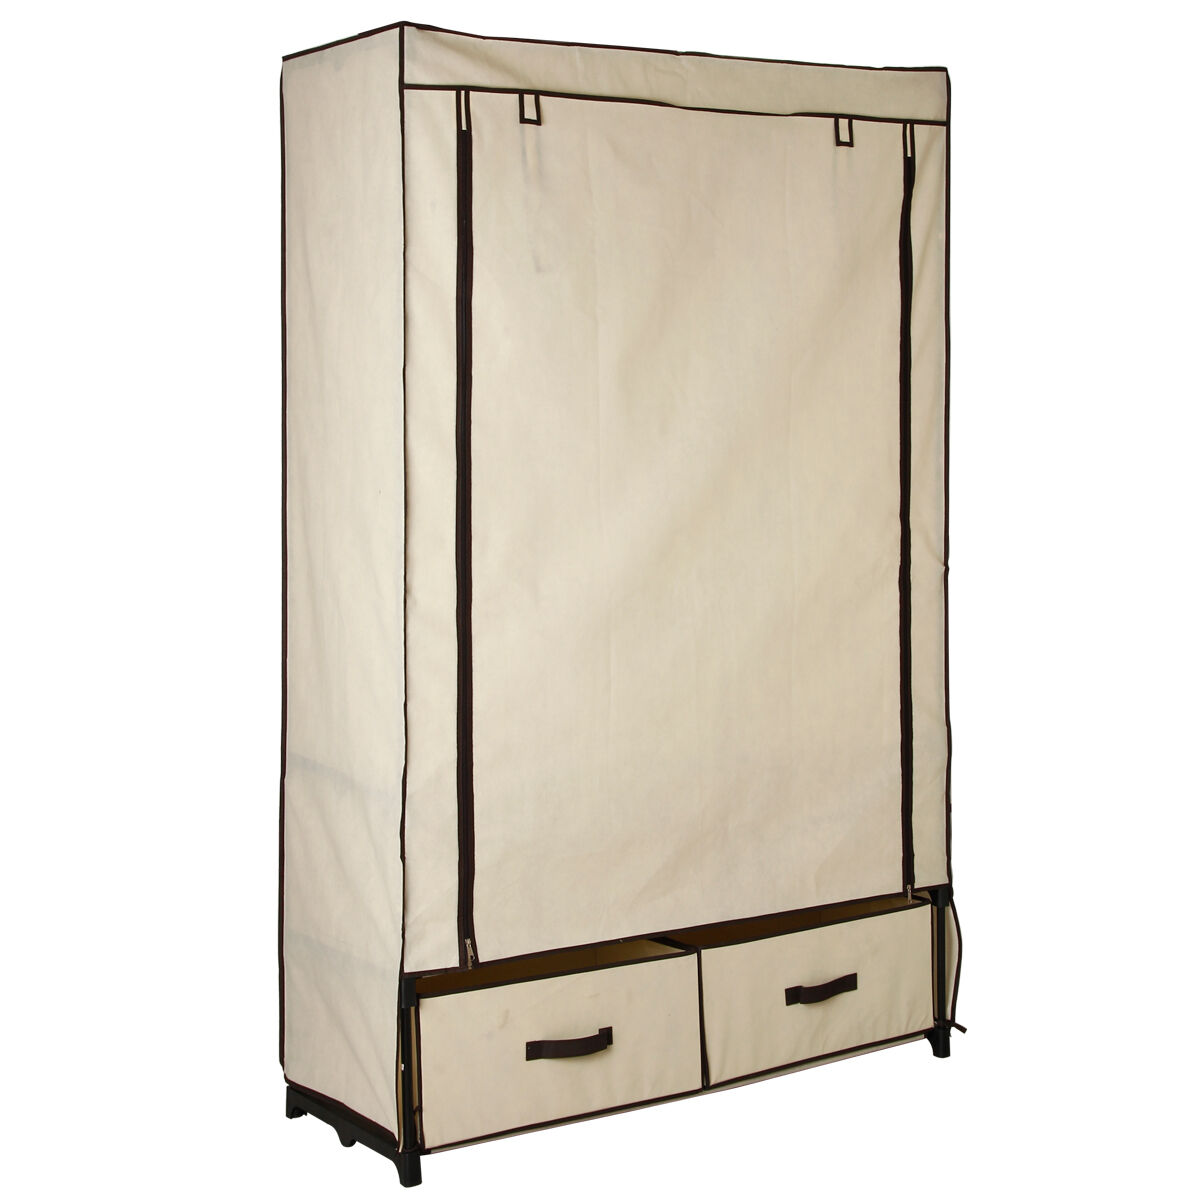 Portable wardrobe closet for Covered clothes rack ikea